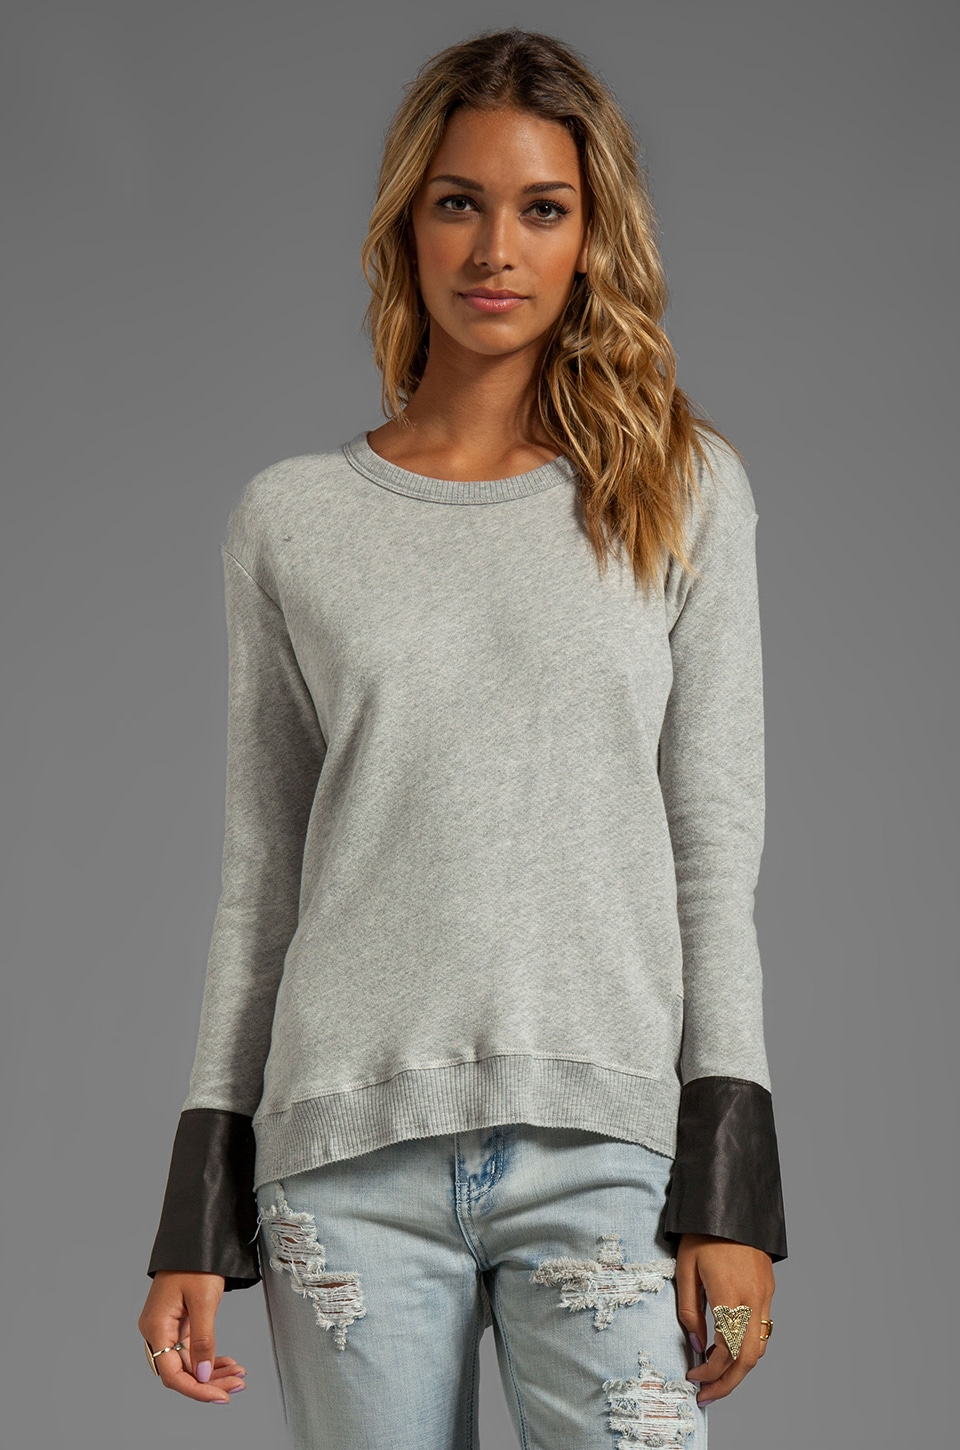 Wilt Vintage French Terry Leather Mix Sweatshirt in Grey Heather/Black Leather